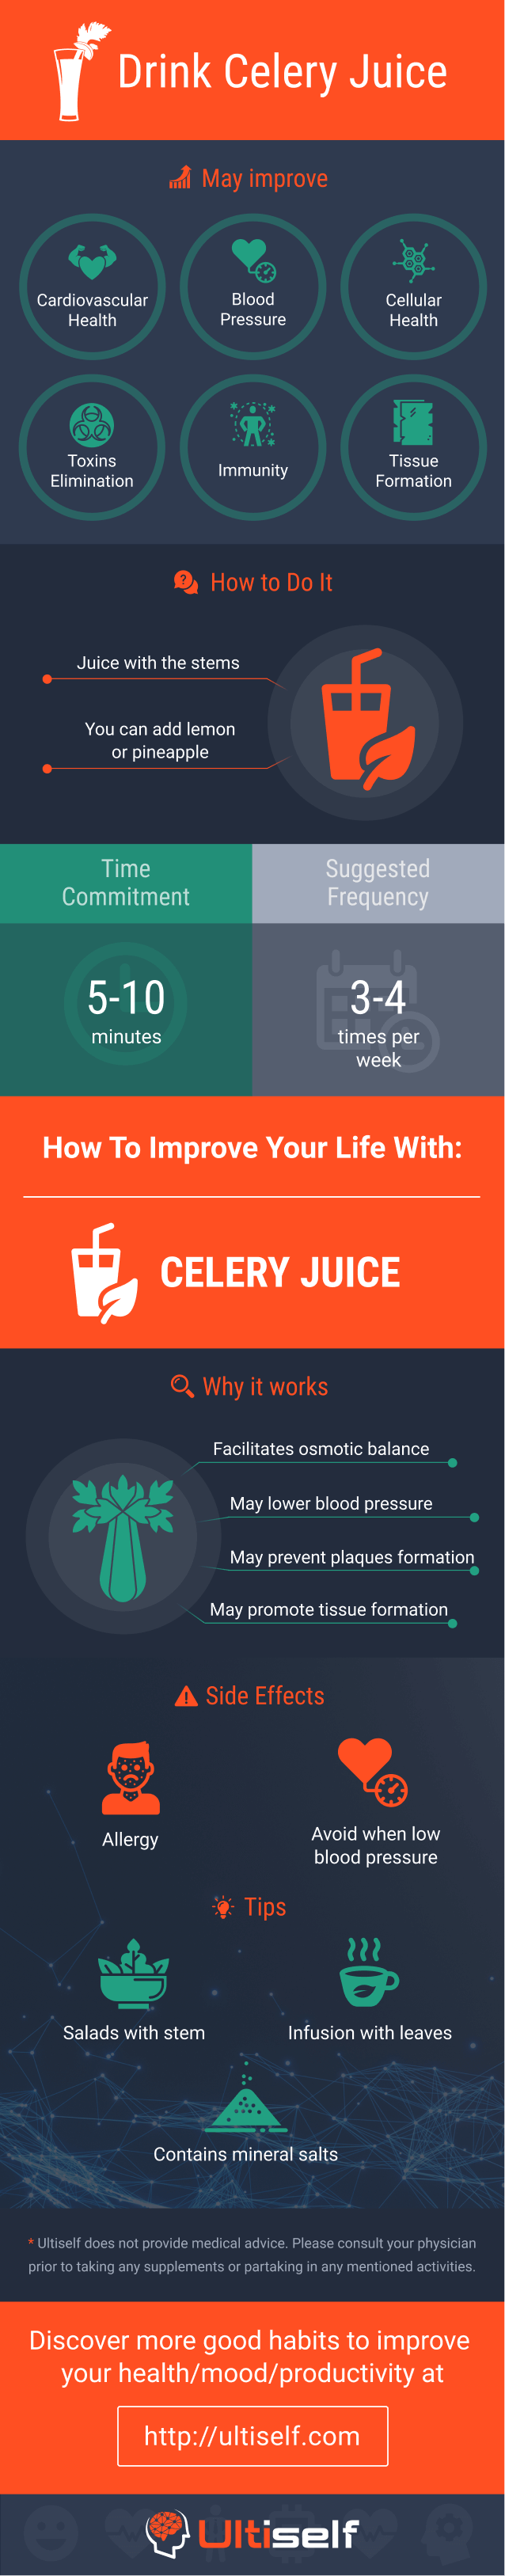 Drink Celery Juice infographic